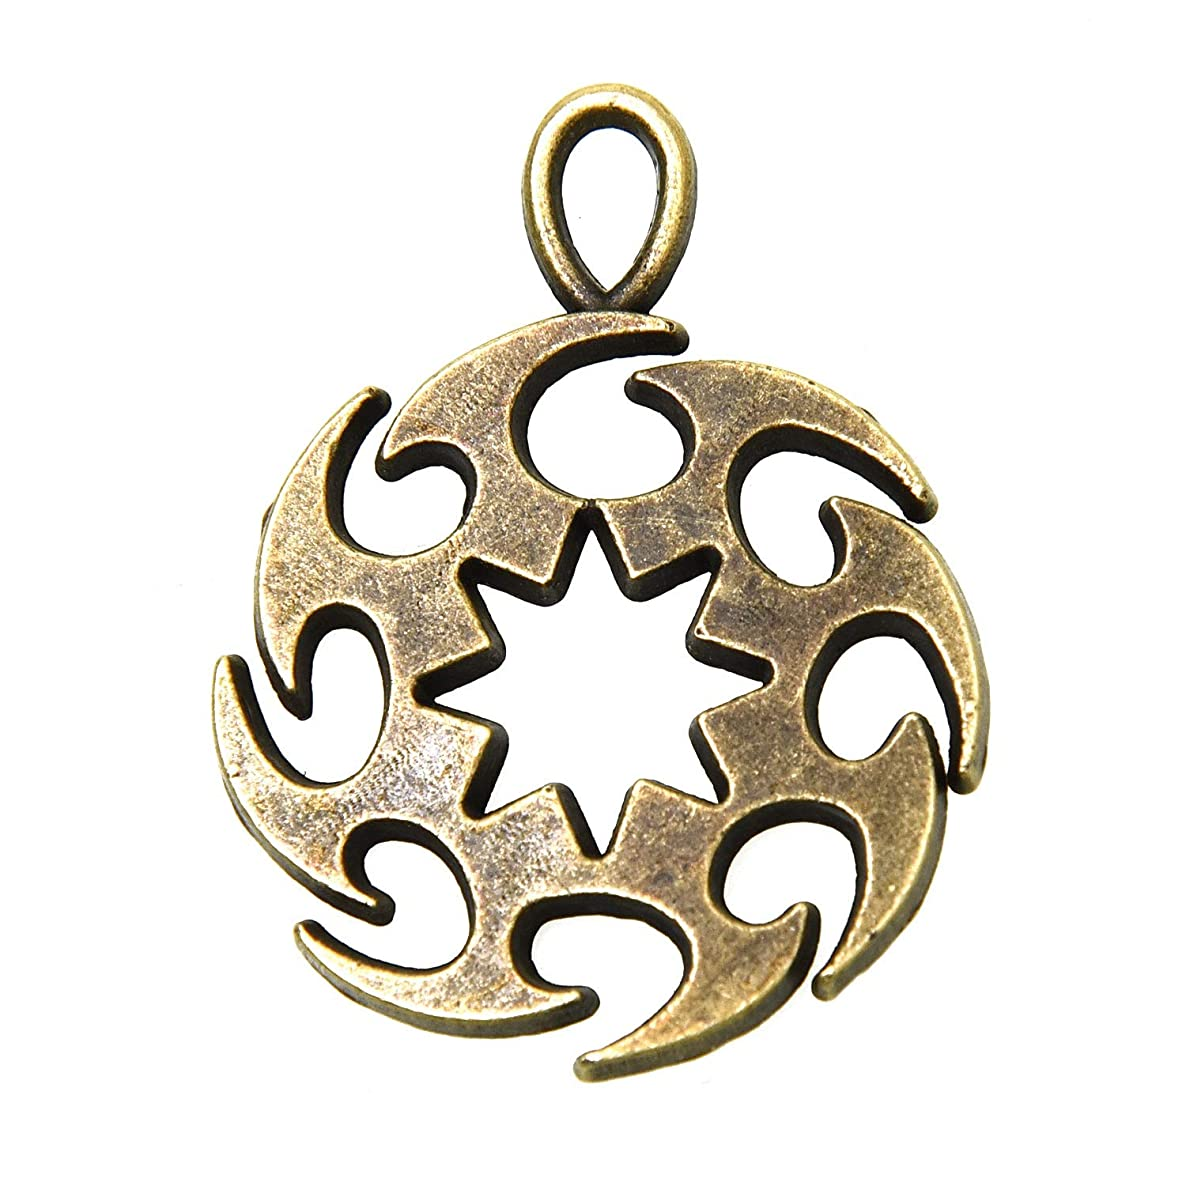 Monrocco 20 PCS Beading Jewelry Making Charms Antique Bronze Gear Wheel Charms Hot Wheel Charms Pendant for DIY Jewelry Making